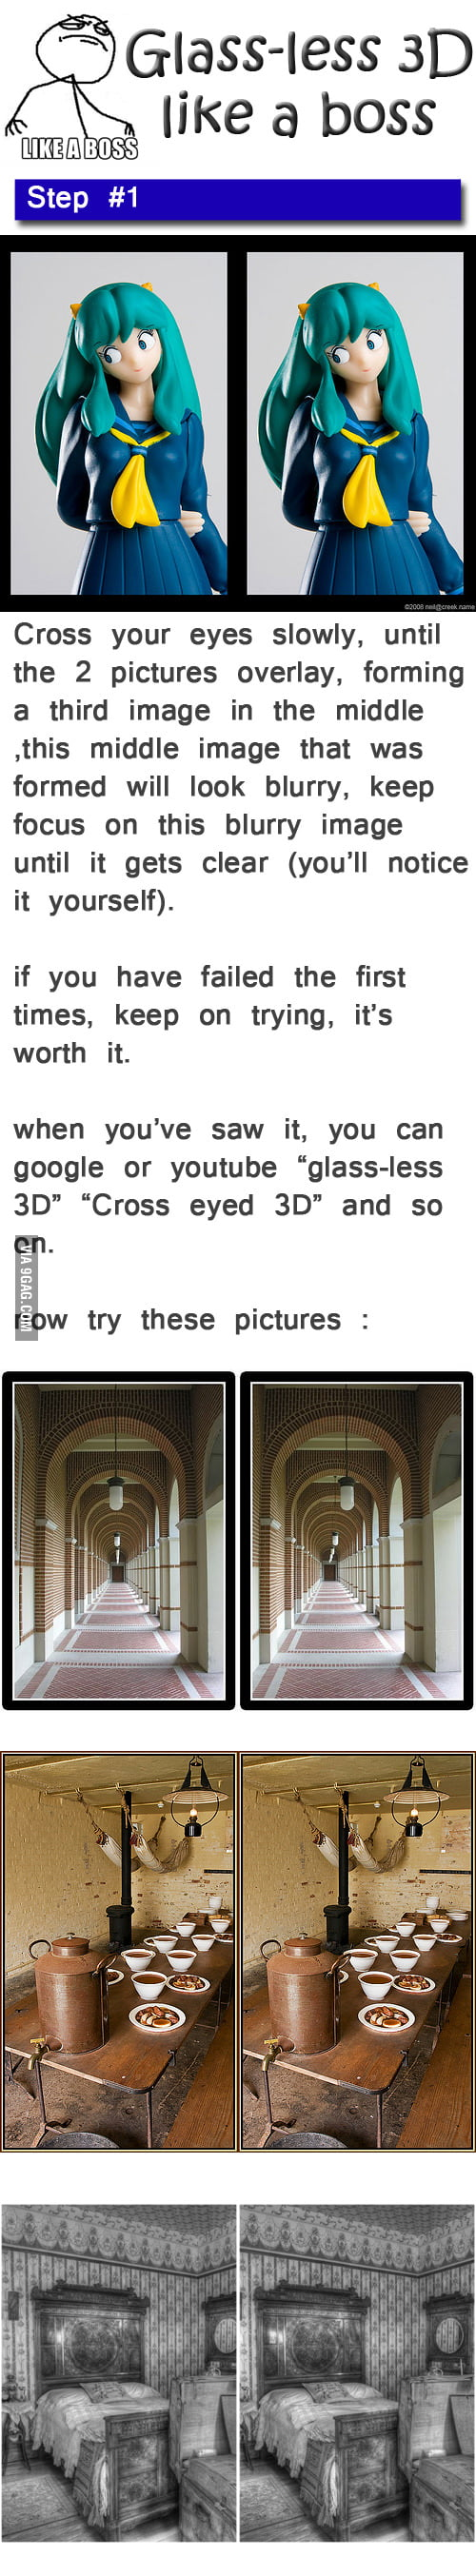 Glass-less 3D like a boss...